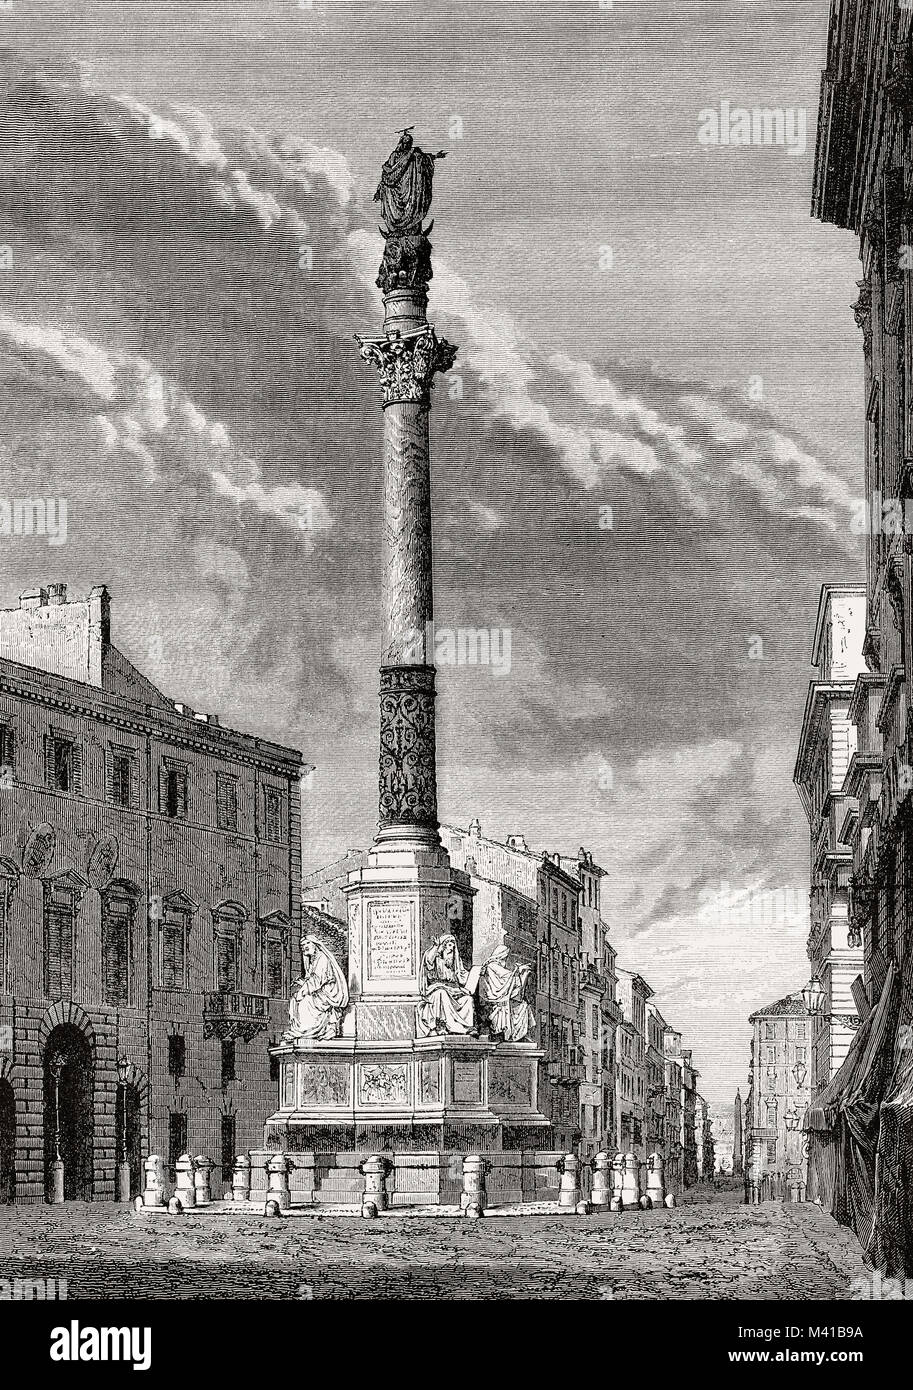 The Column of the Immaculate Conception, Rome, Italy, 19th Century - Stock Image